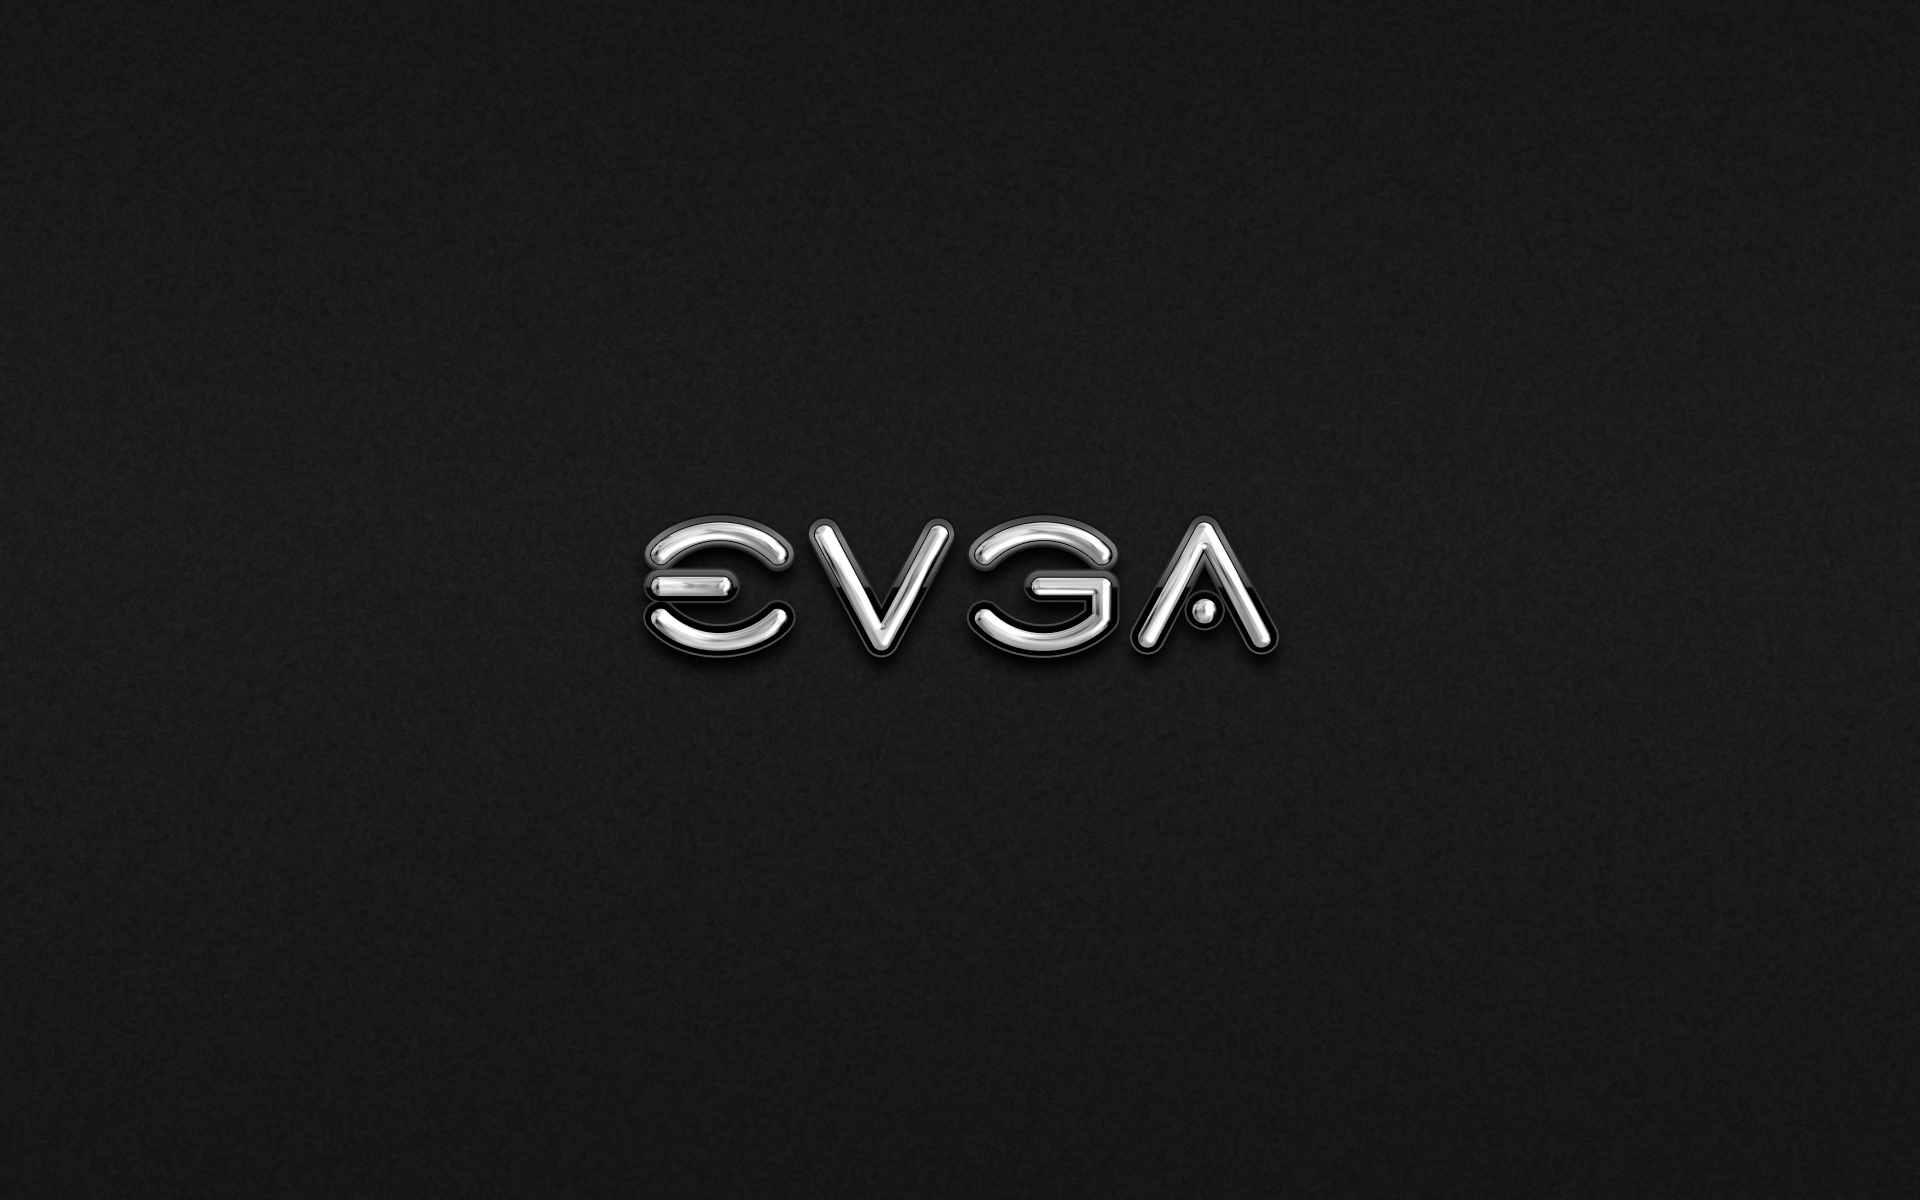 evga wallpapers avatars page 9 evga forums